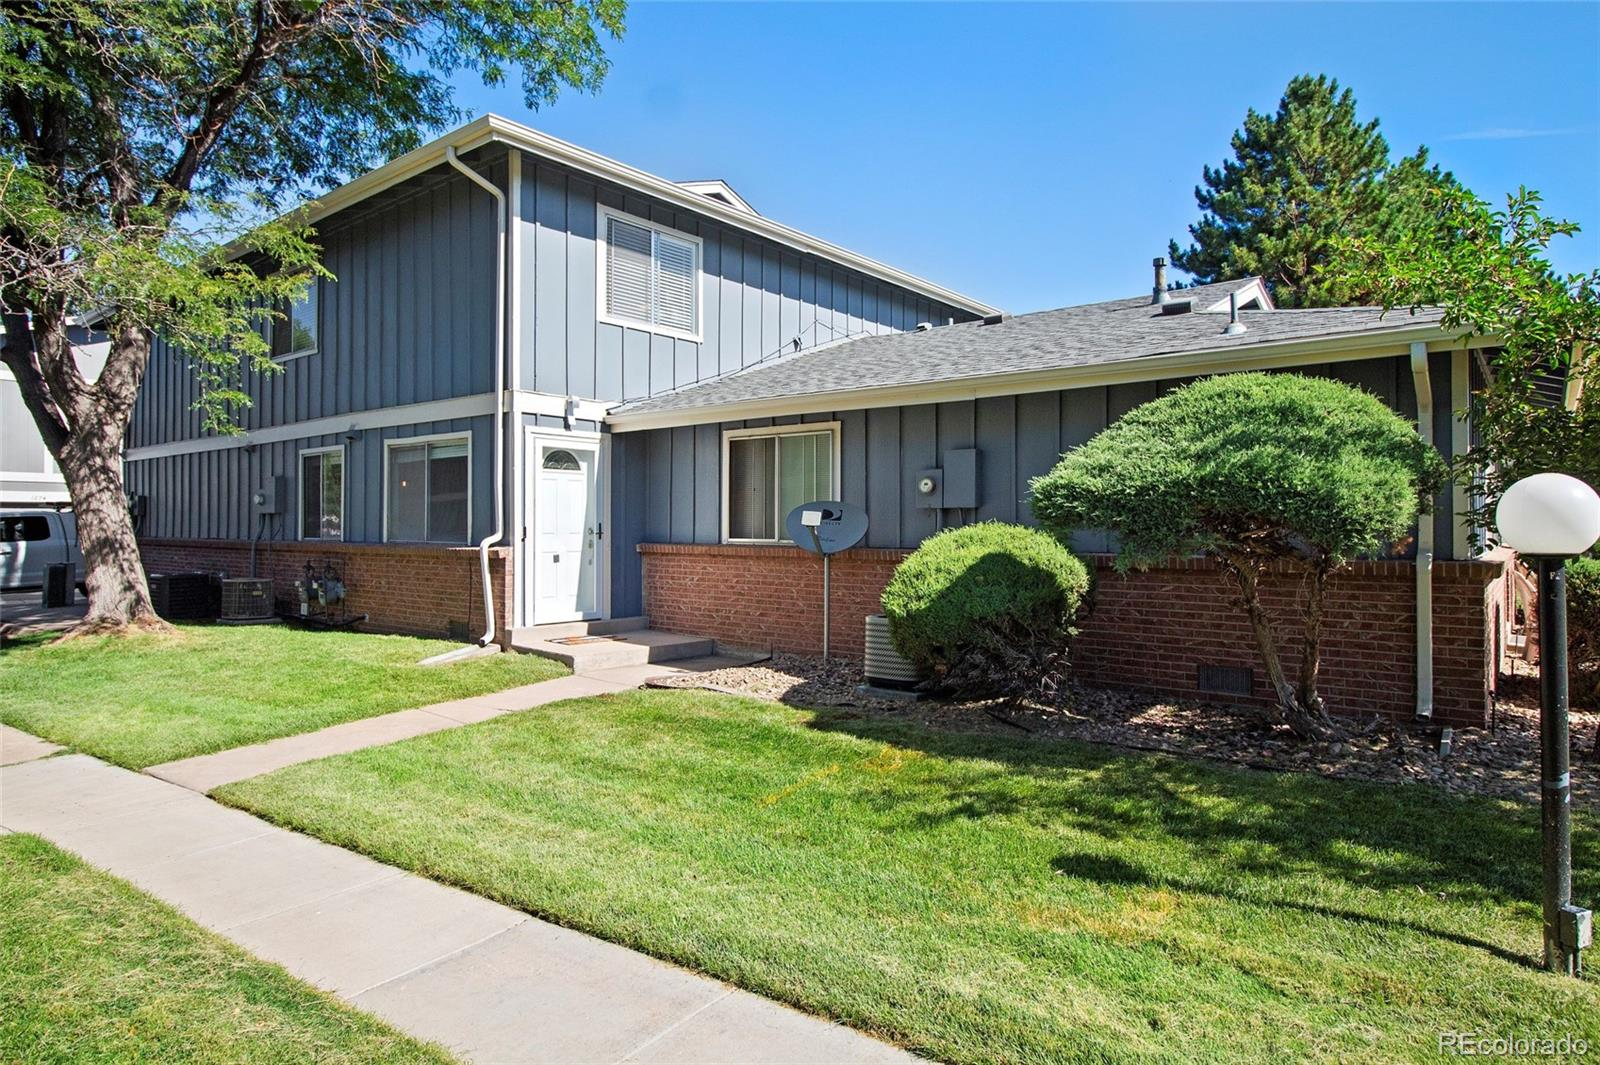 Perfect Starter Home or turnkey rental only 1/2 mile to the Medical Center of Aurora! Was rented Aug 2019-Aug 2020 for $1,500 monthly. Nicely maintained Light & Bright 2-Bedroom 1-Bathroom TownHome. Best Location in Hallcraft's Village East; quiet community with large, grassy open space directly in front of this home, with easy access to 1-225. Your front door opens to an expansive grassy greenbelt with mature trees that feels like it's your own personal backyard/park/oasis. Includes washer, dryer, refrigerator, and attached 1-Car Garage. HOA includes clubhouse, water, sewer, snow removal, trash, building/grounds maintenance, and insurance. Great location close to Medical Center(s). 1 mile or less walking distance to R-Line Light Rail's Florida Station, Utah Park & Indoor Pool, Overland High School and Prairie Middle School. Centrally located, less than 20-miles to Denver Downtown or Denver International Airport, 8-miles to the Denver Tech Center, and only 2-miles to the Town Center at Aurora. ***Check out the 3D virtual Matterport Virtual Tour https://my.matterport.com/show/?m=r3Dae9pR5M4&mls=1***